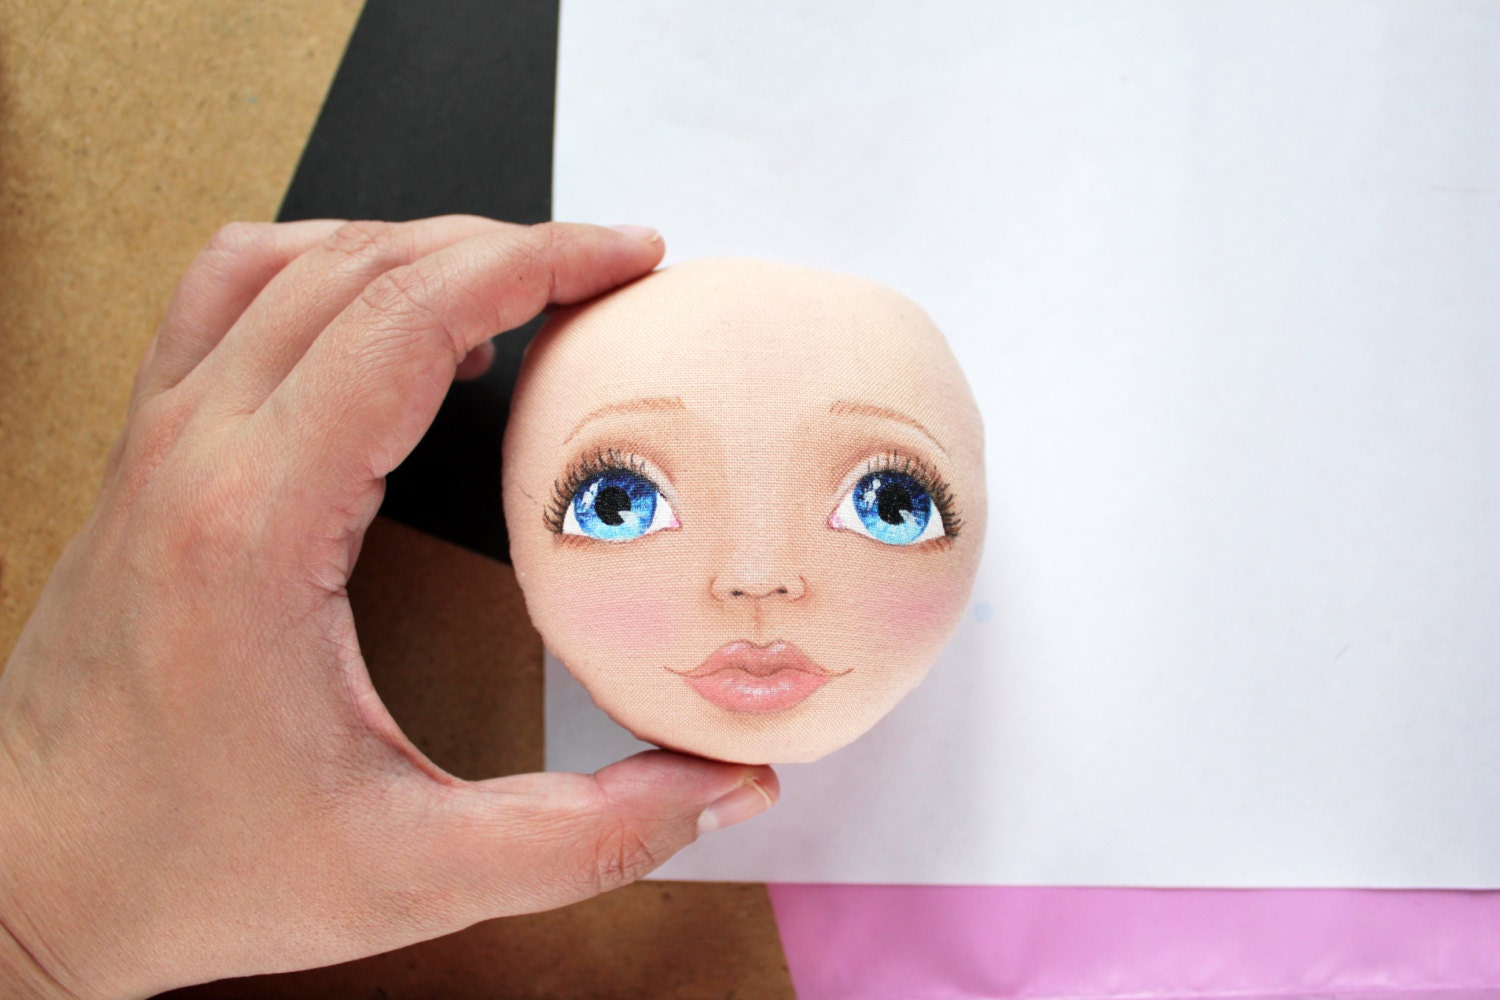 Best Image of How To Draw A Face Painting - All Can Download ALL Guide And How To Build